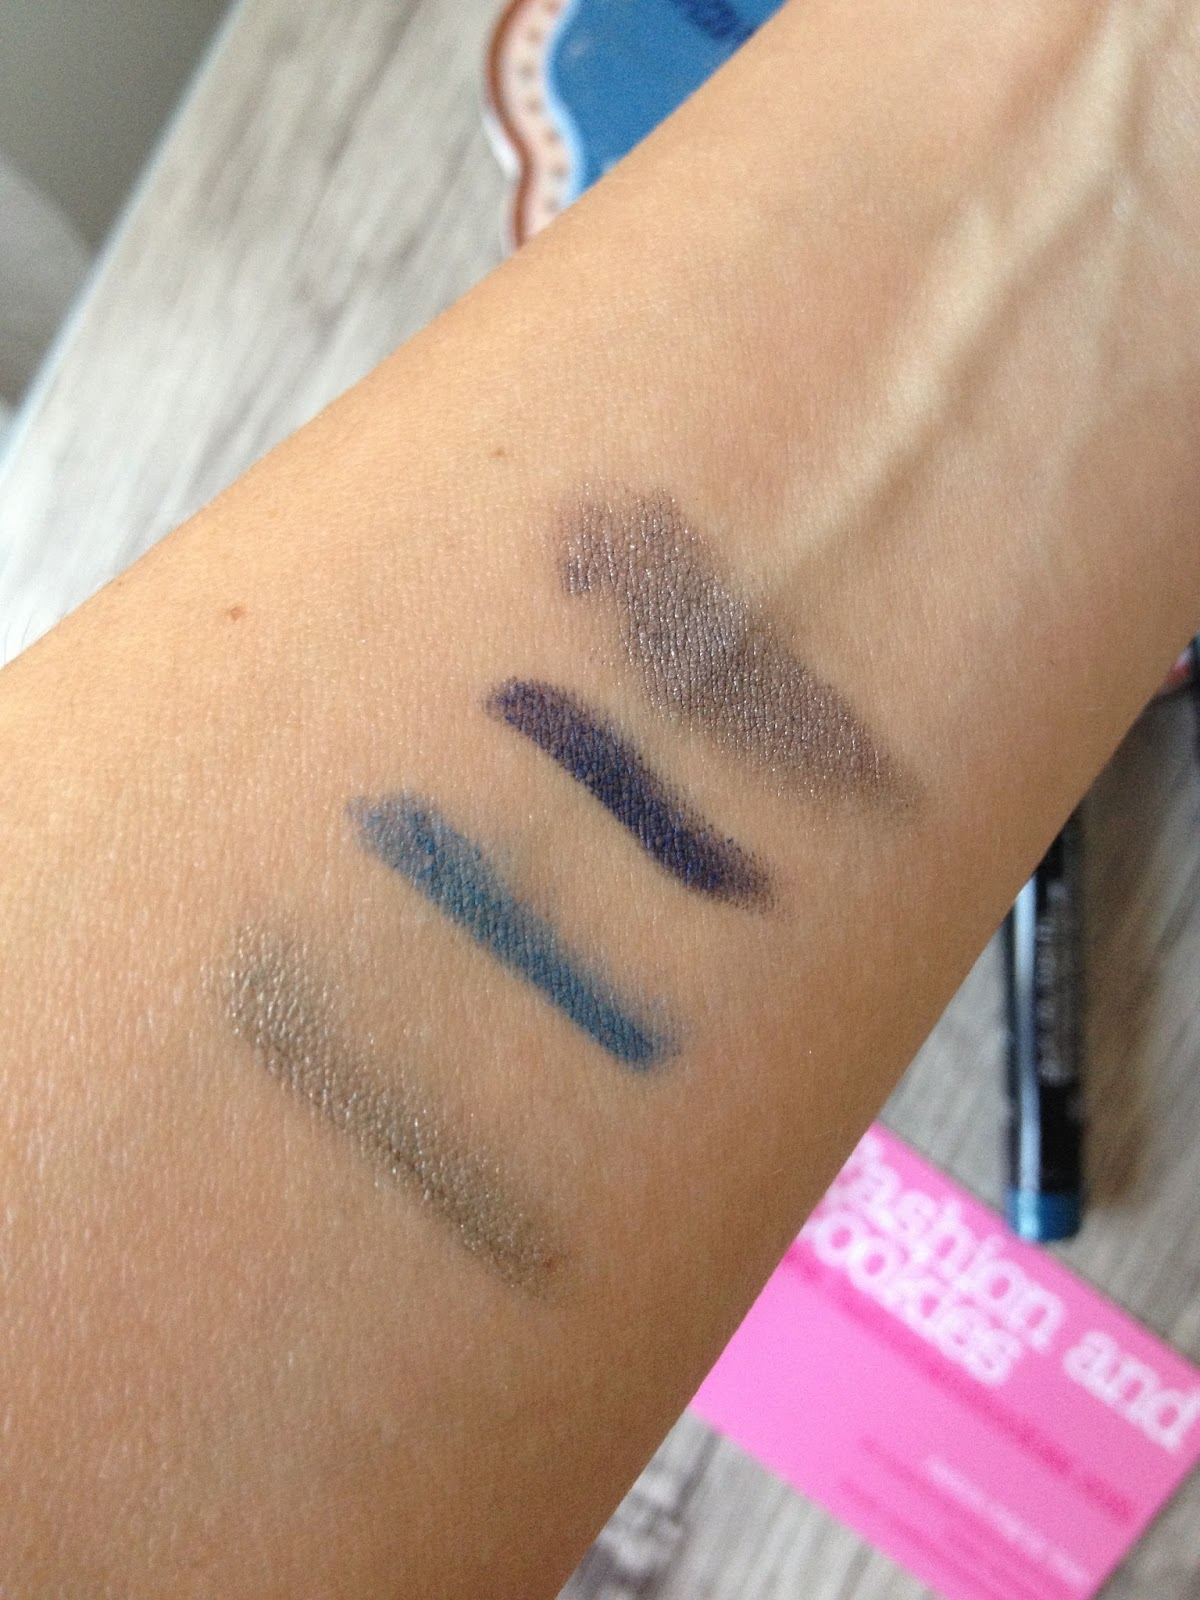 Lancome Ombre Hypnose Stylo swatches on Fashion and Cookies beauty blog